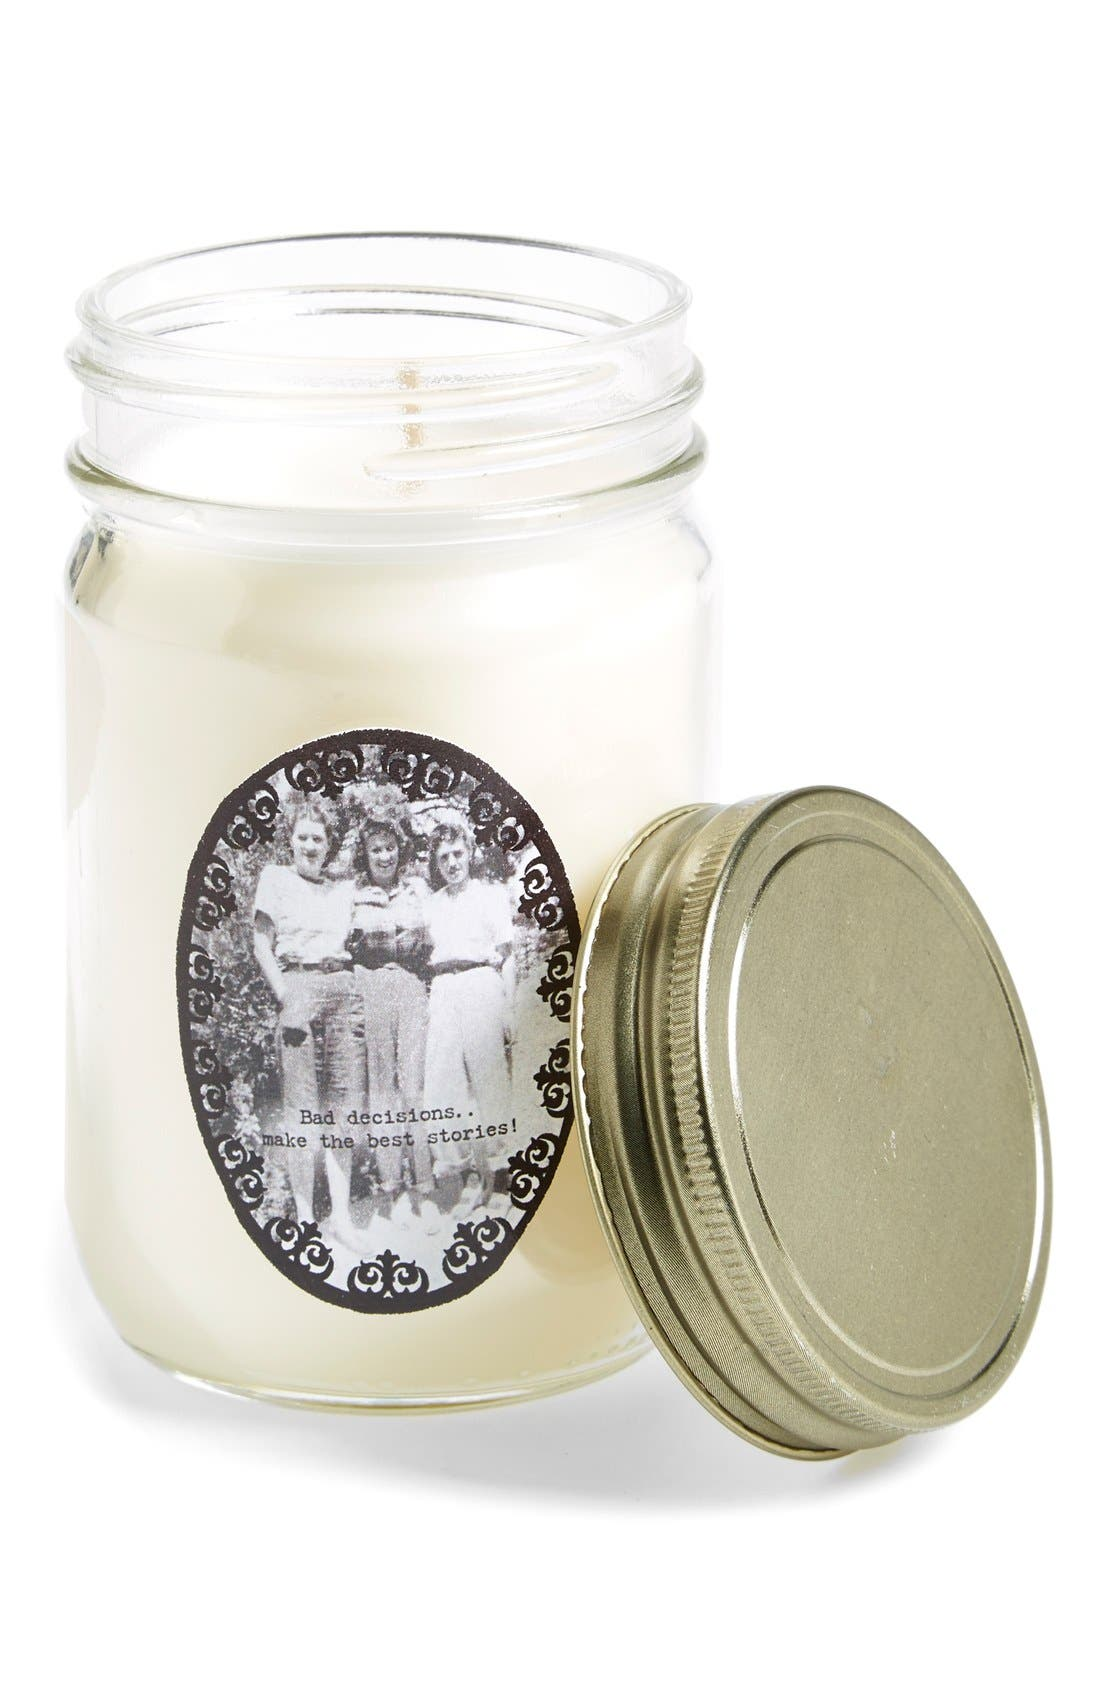 Alternate Image 1 Selected - Trash Talk by Annie 'Bad Decisions' Candle